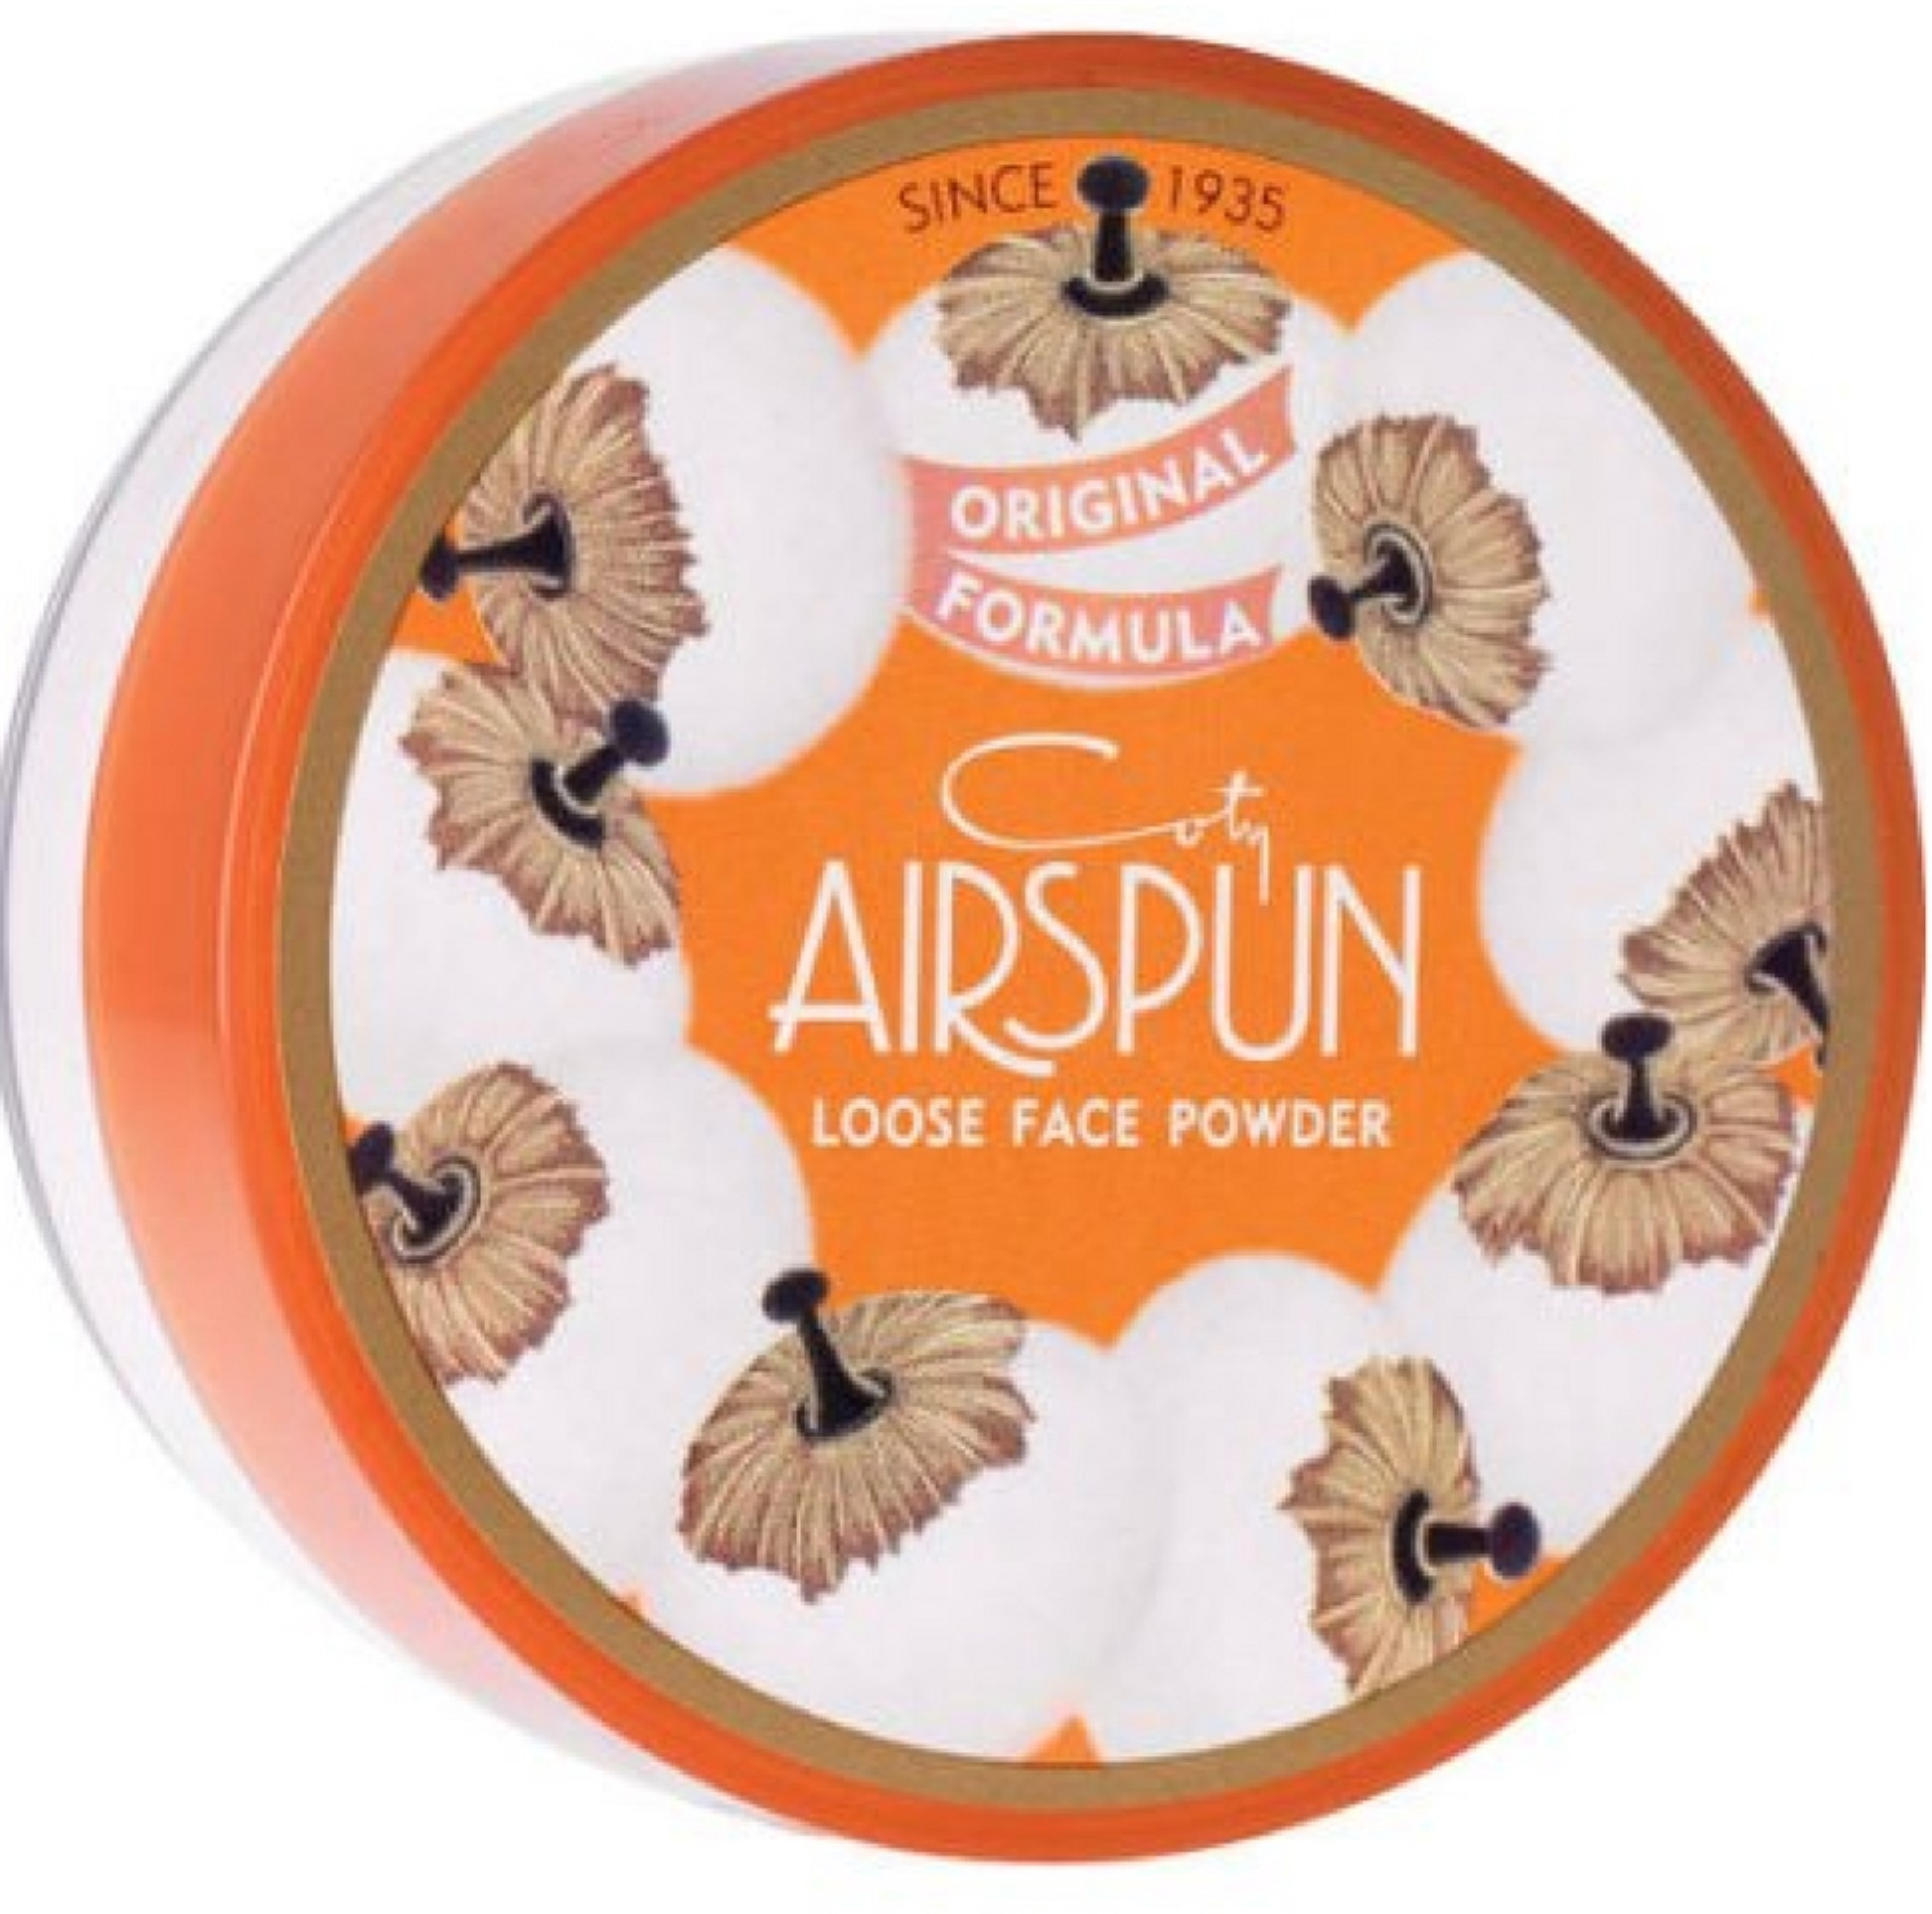 Coty Airspun Loose Face Powder, 2.3 oz